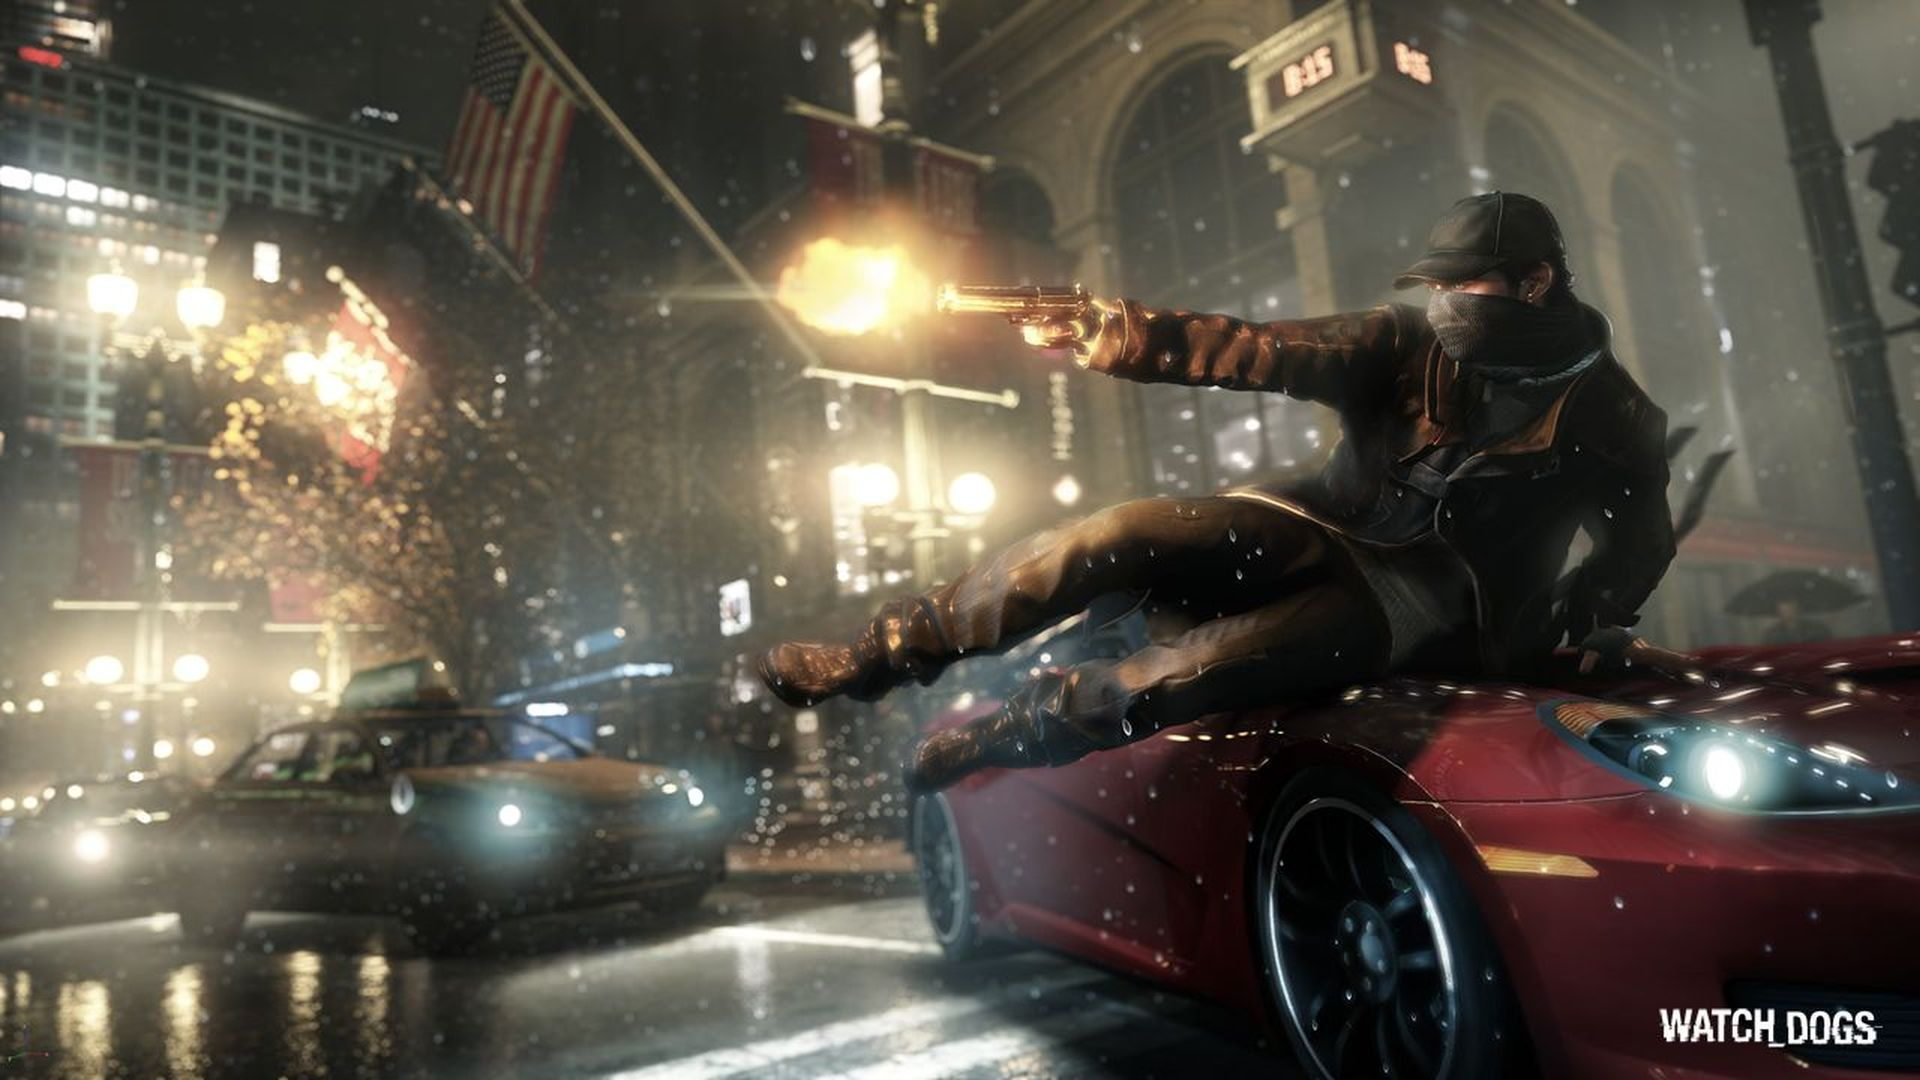 Watch_Dogs (PS3) - 7